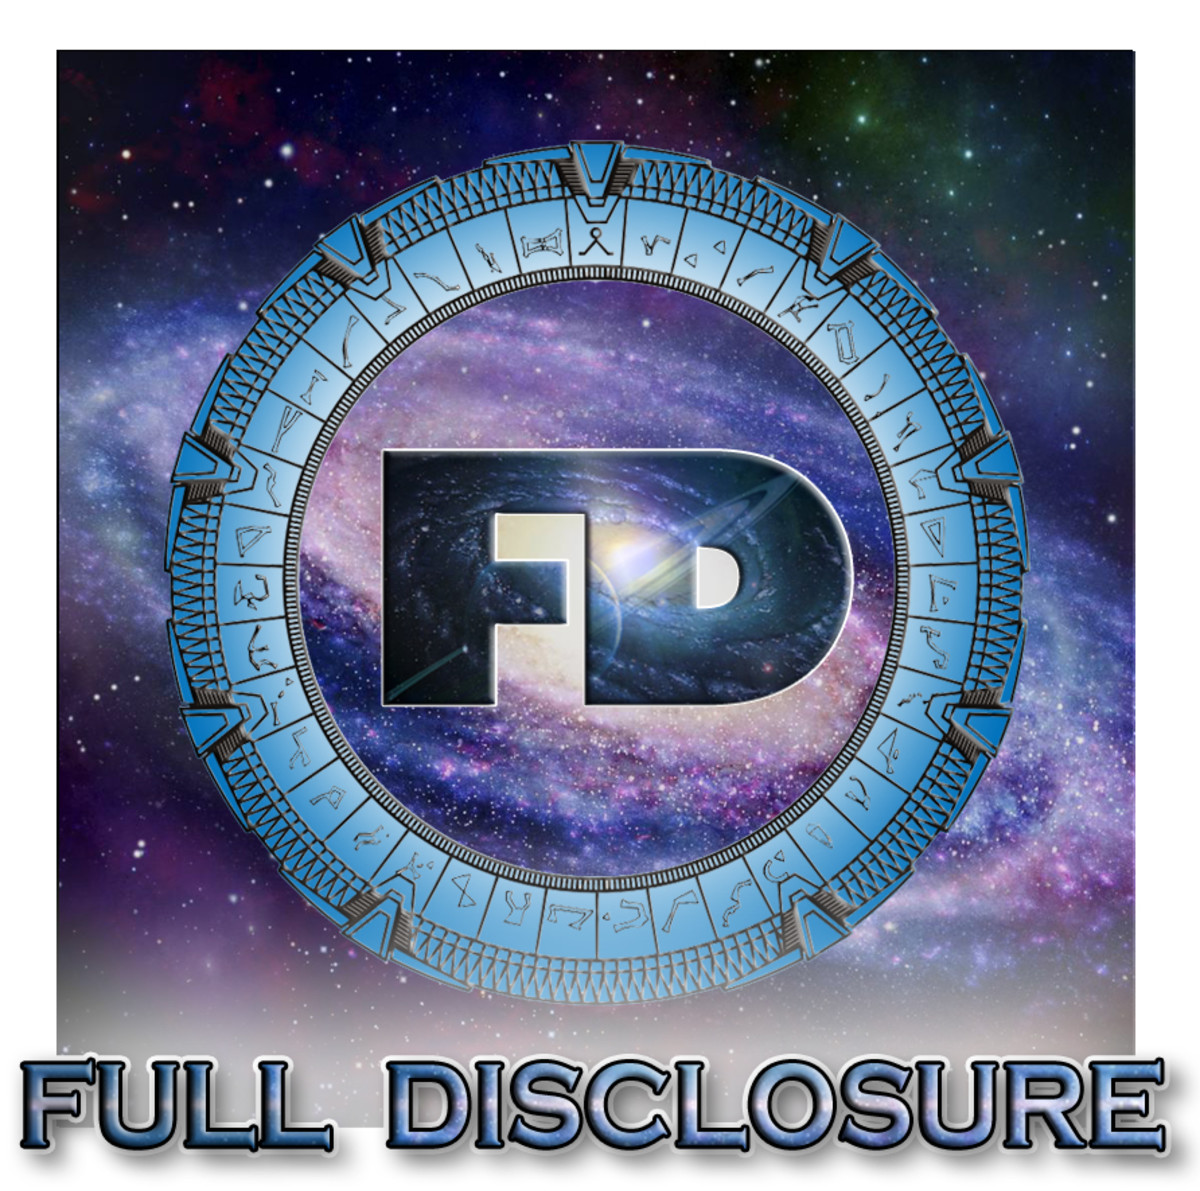 Full Disclosure - What It Means to Mankind and How It Works